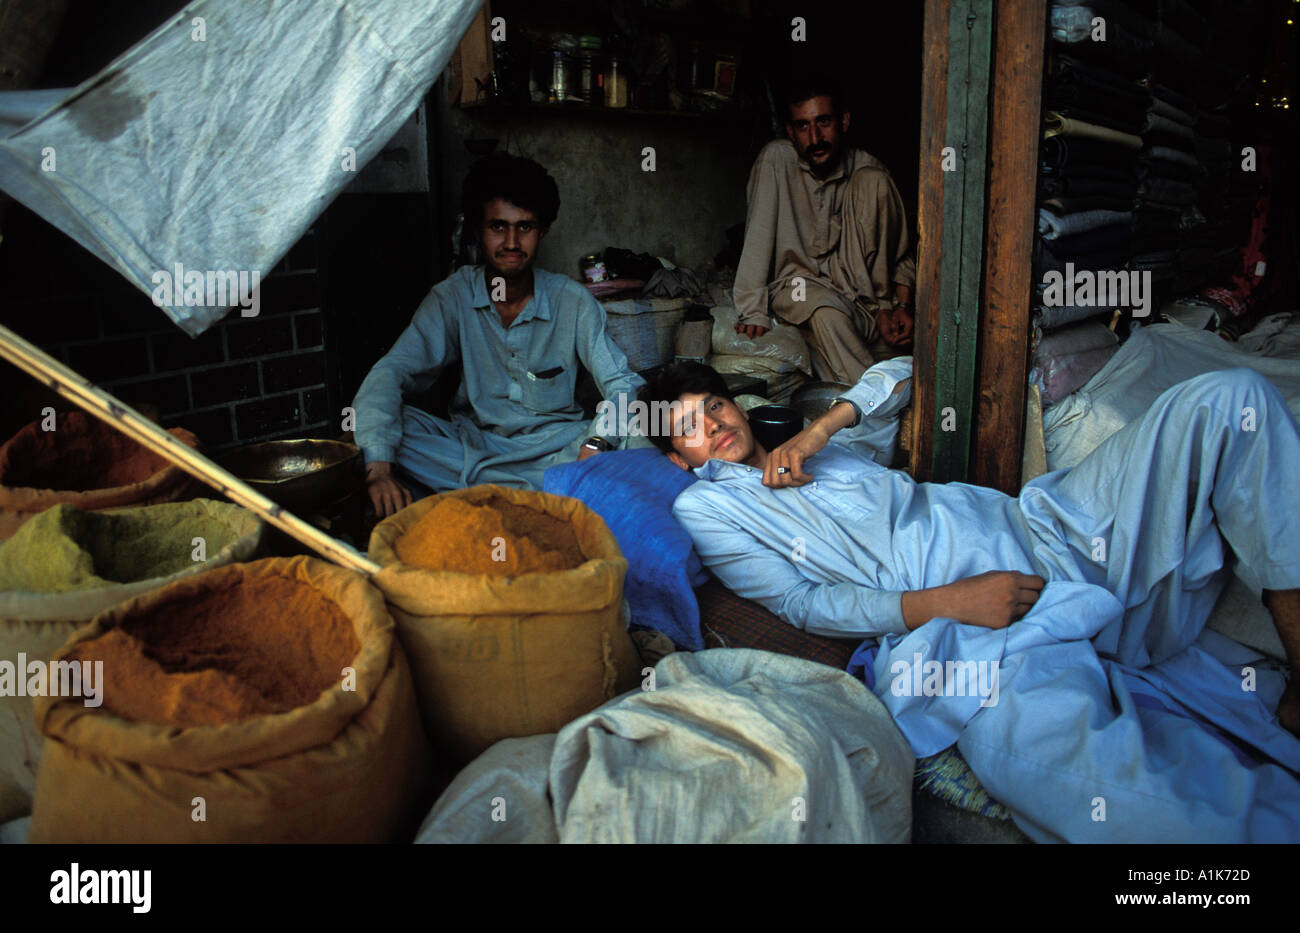 Vendors at shop selling spices relaxing Chittral NW Frontier Province Pakistan - Stock Image